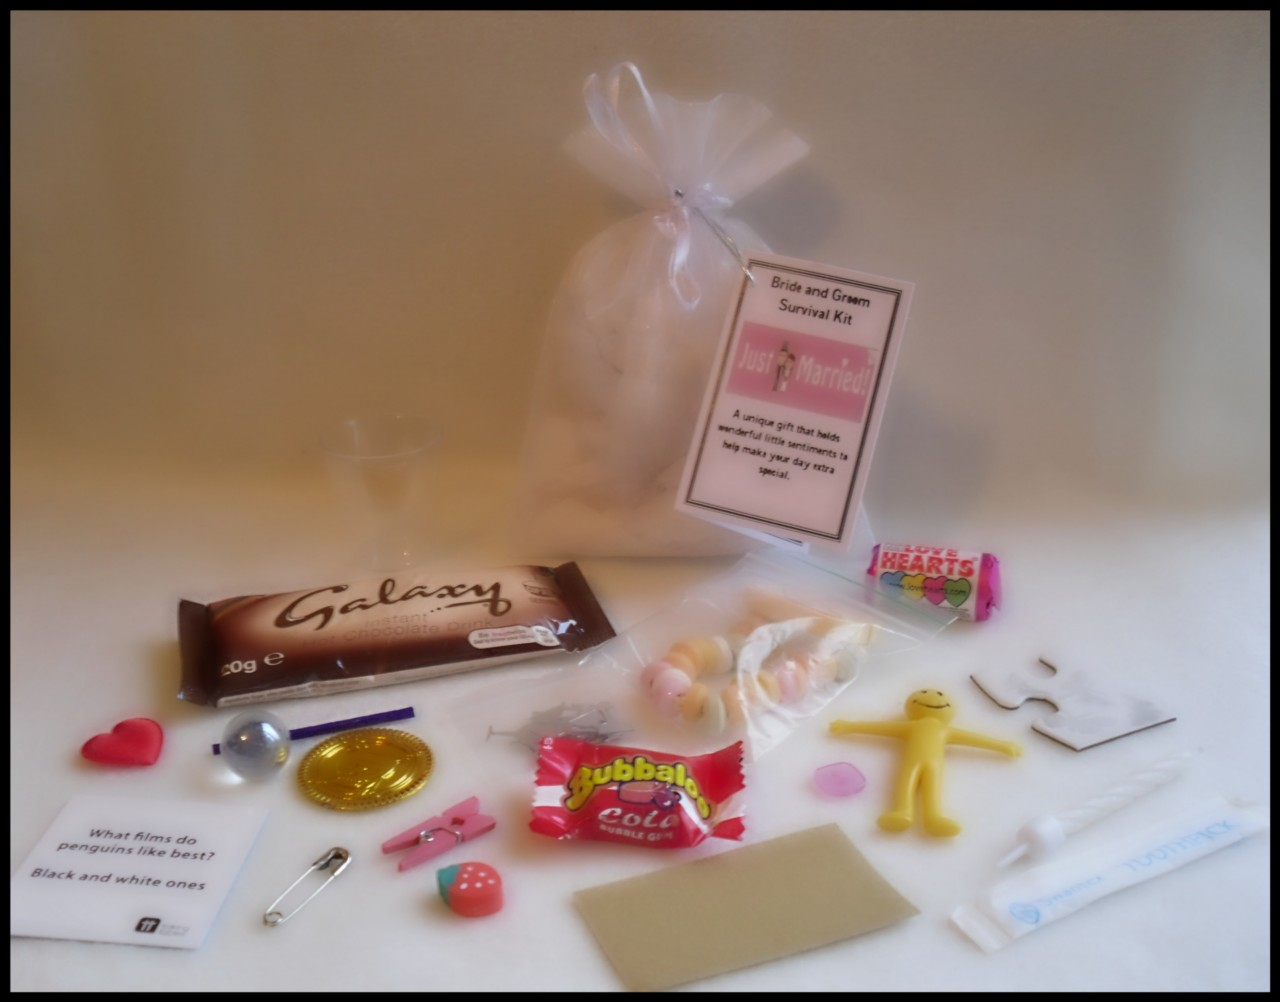 Quirky Wedding Gifts For Bride And Groom : ... about Bride and Groom Novelty Survival Kit. An Unusual Wedding Gift